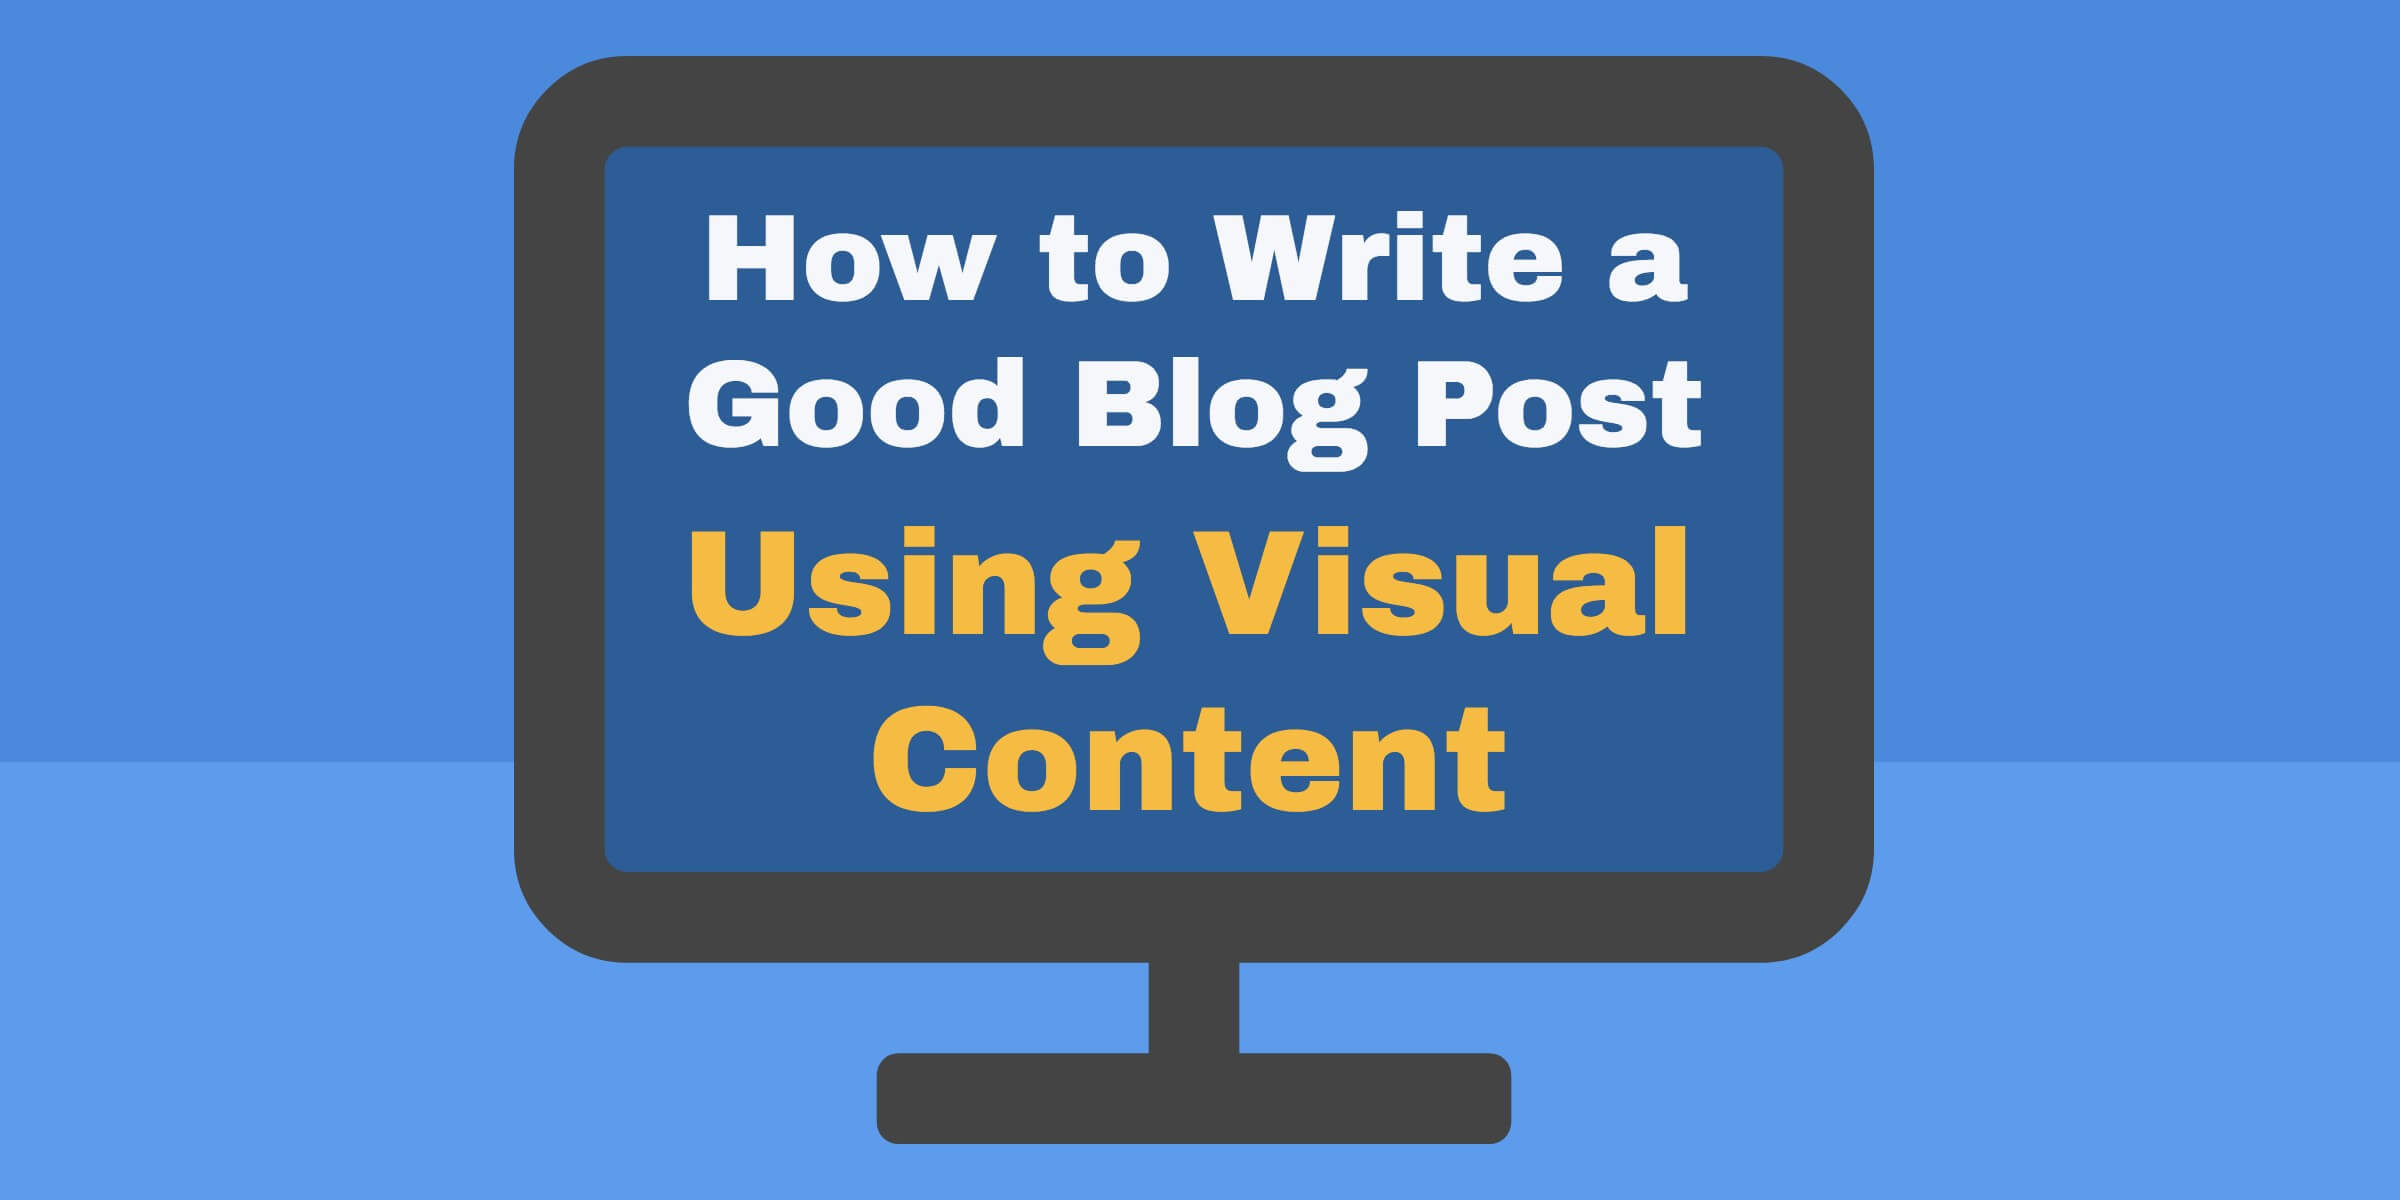 How to Write a Good Blog Post Using Visual Content